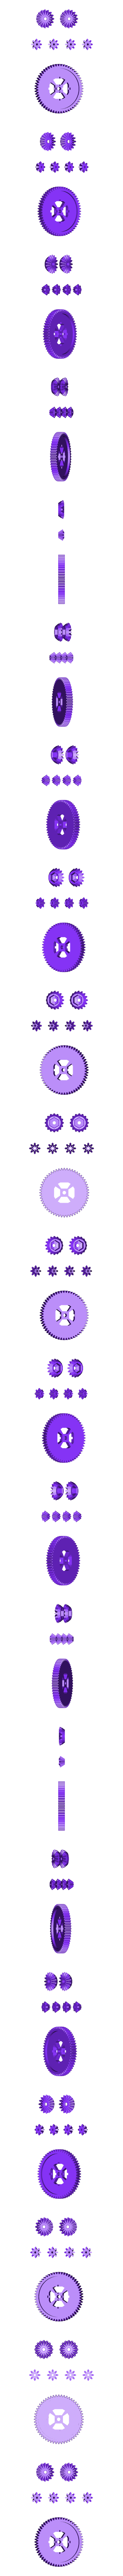 CGB-gears.STL Download free STL file Fully printable Monster Truck • 3D printer design, tahustvedt